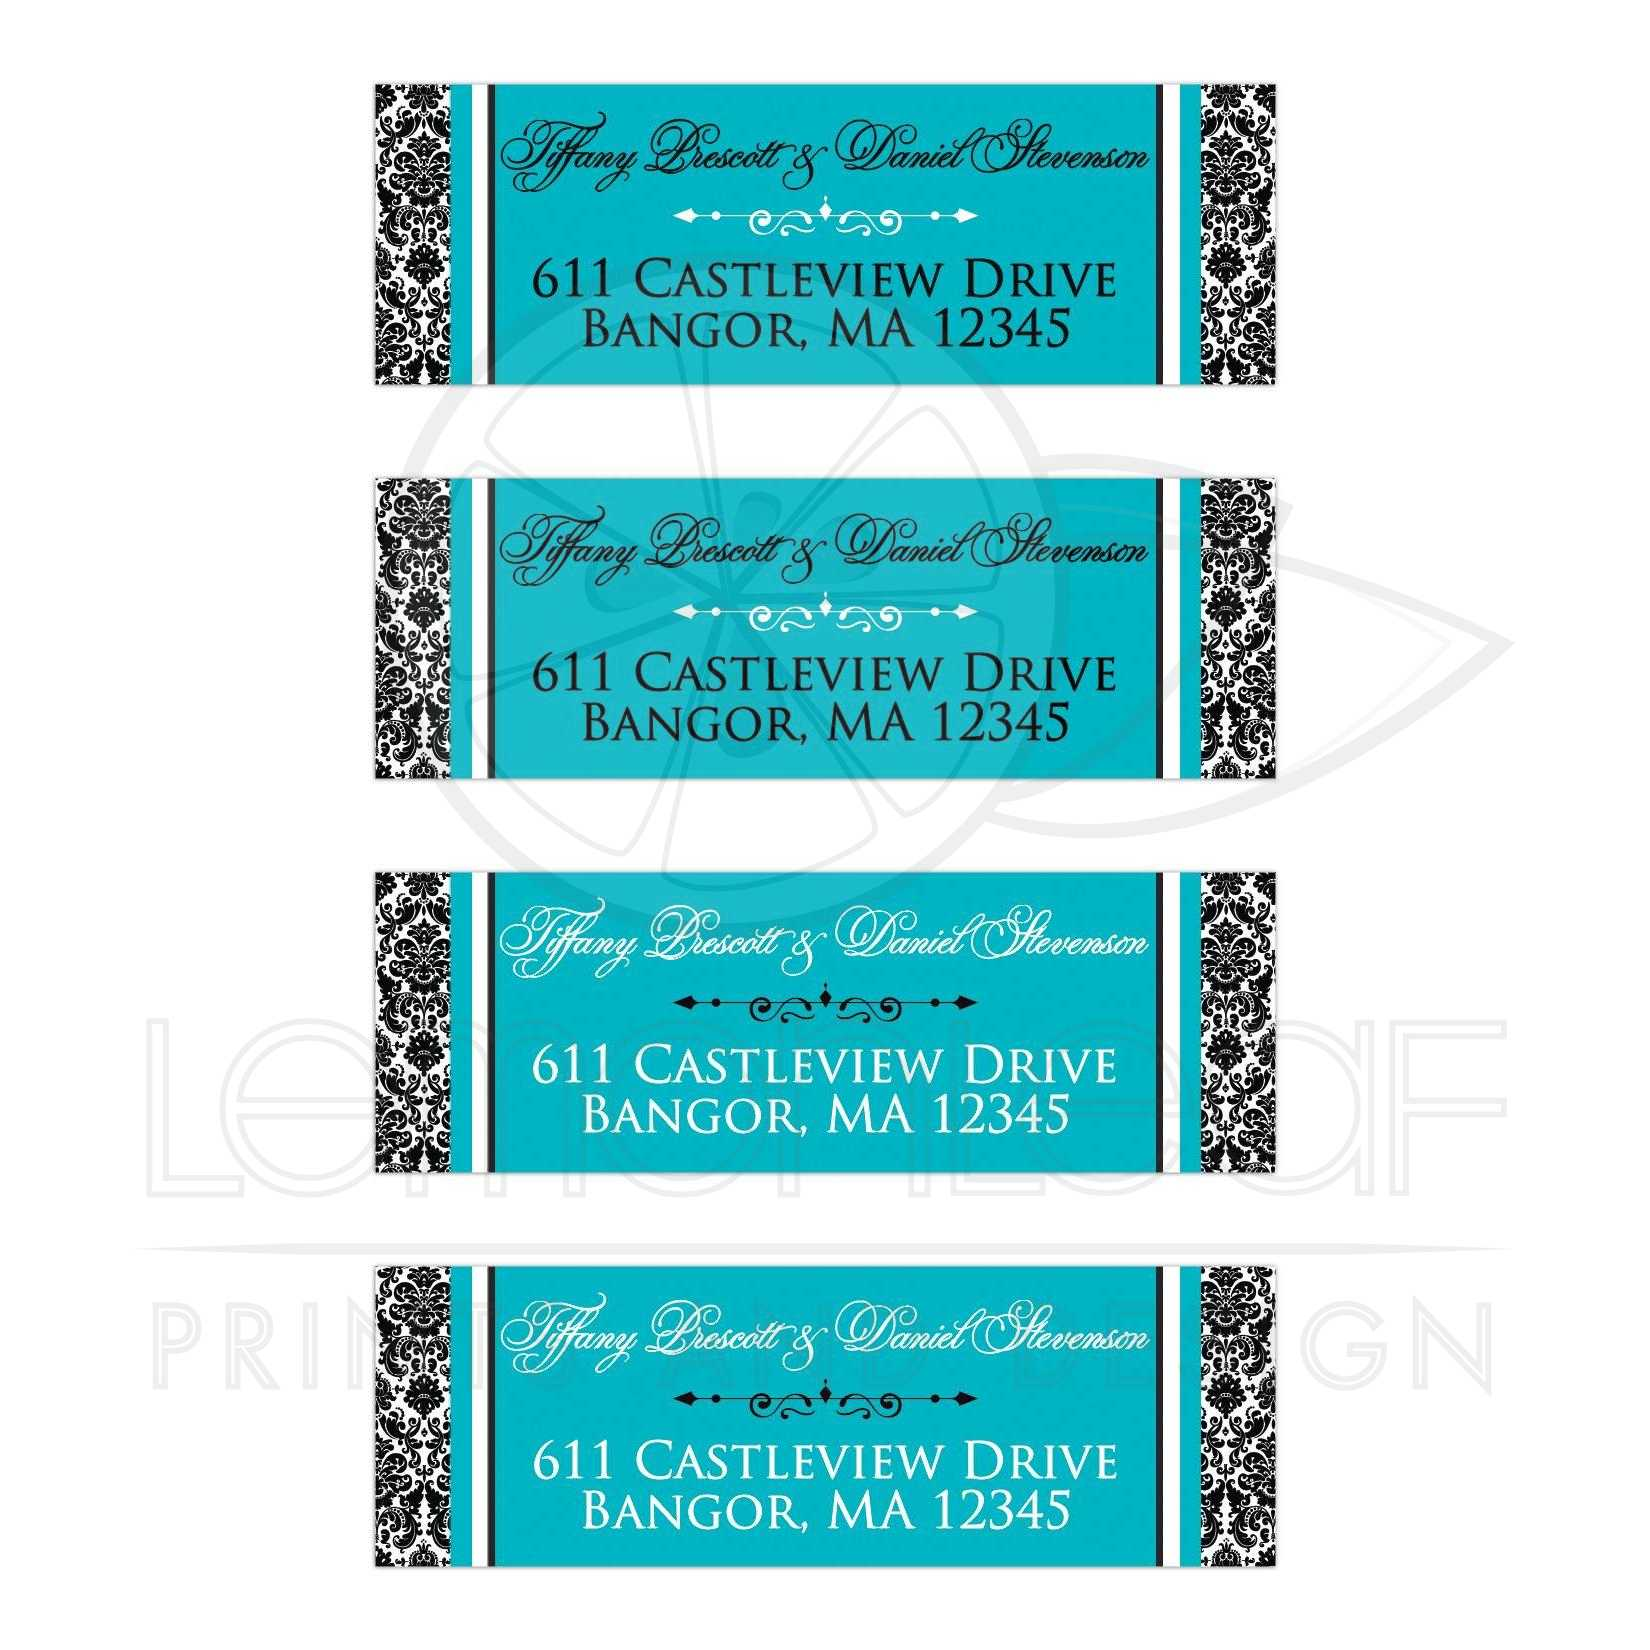 address labels 4 black and white damask turquoise ornate scroll